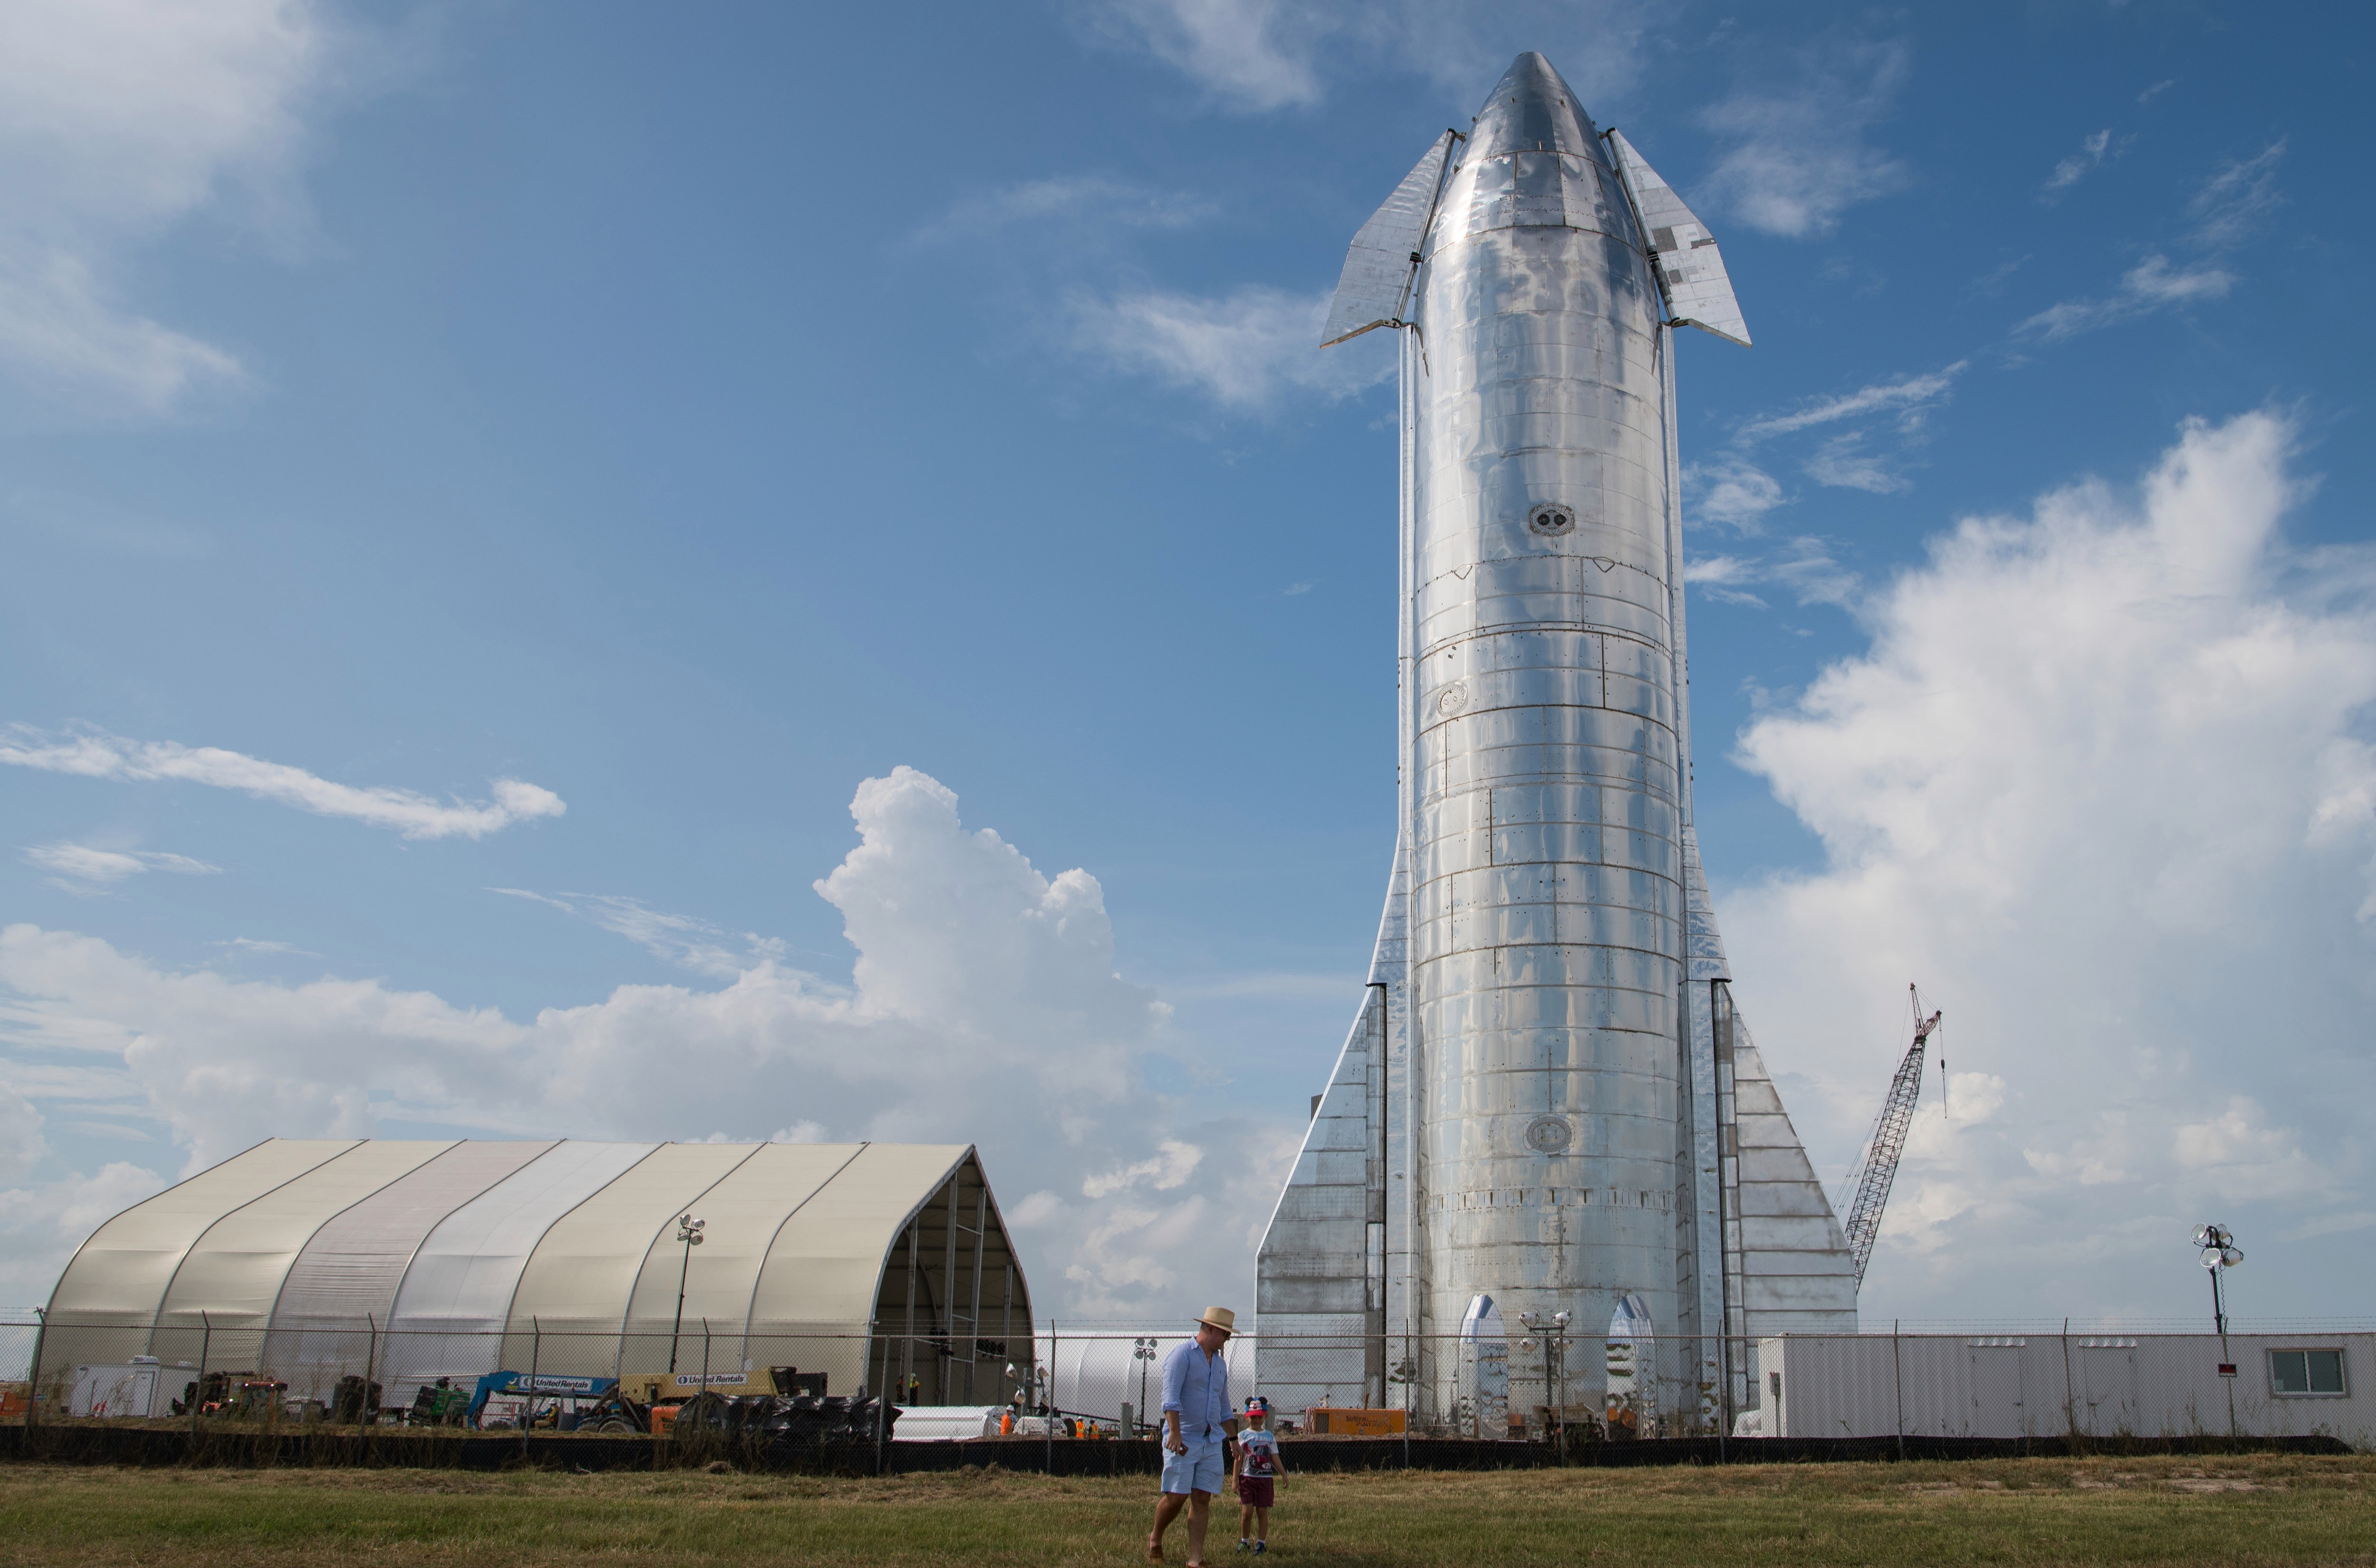 Starship is an experimental spacecraft in the early stages of development